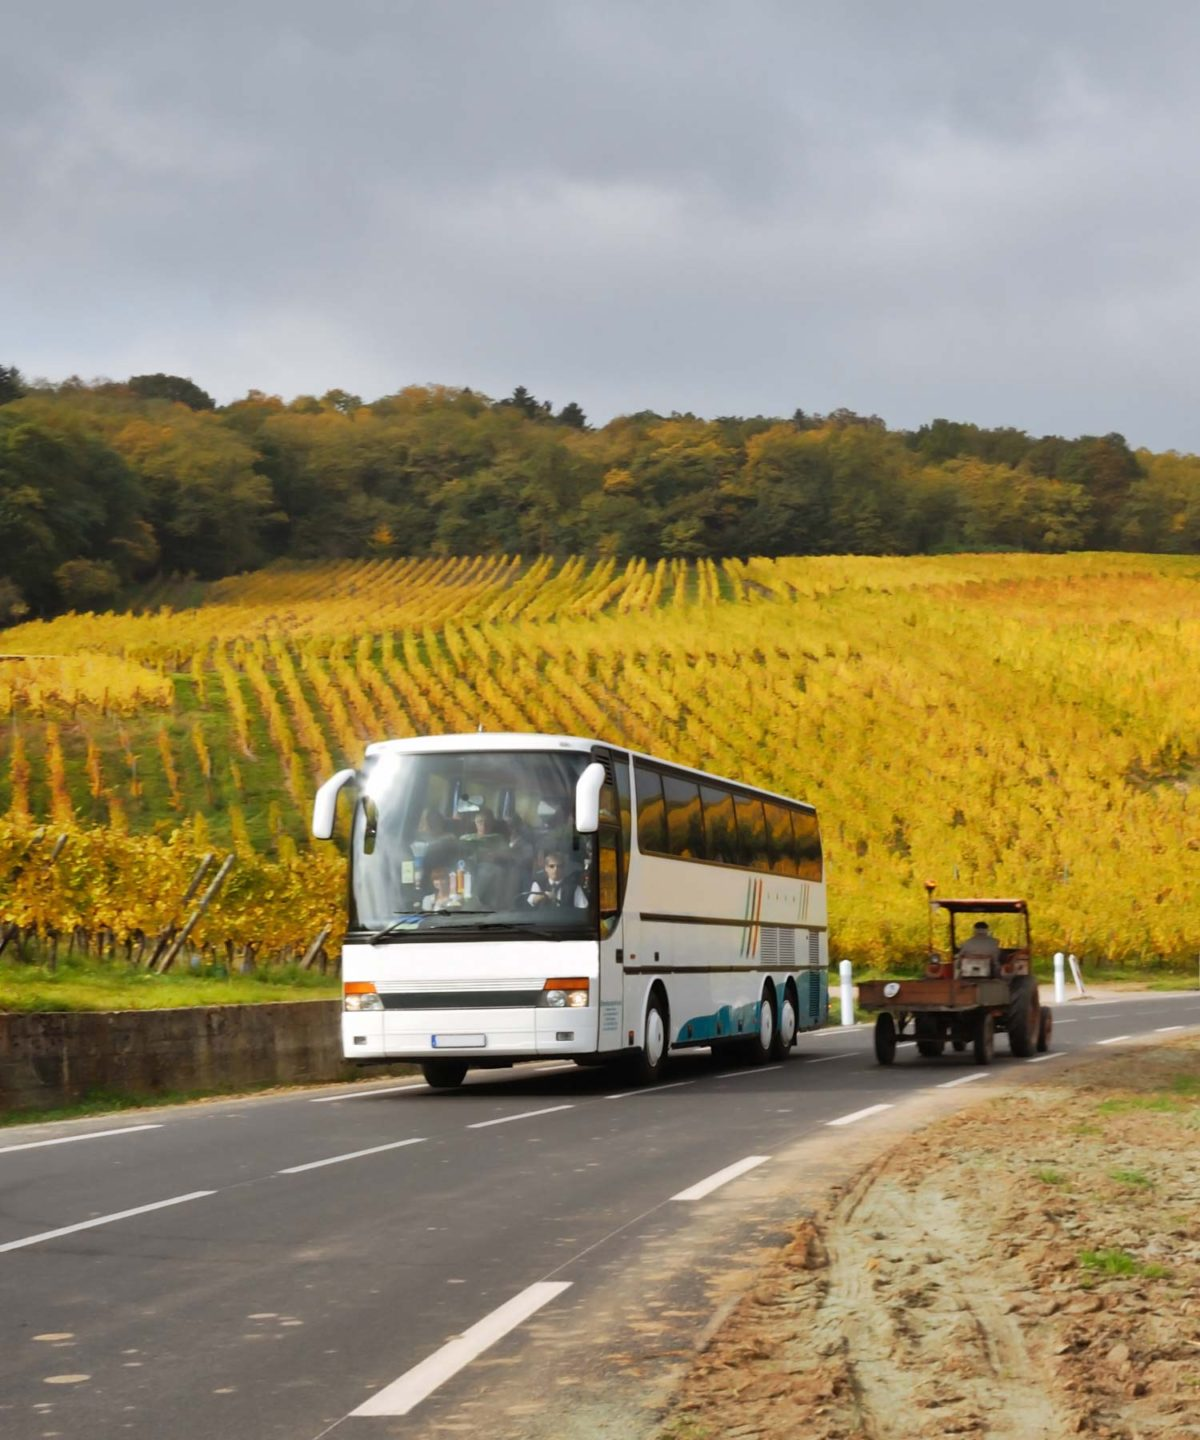 Guided Bus Tours - Permium Tours and Travel portrait